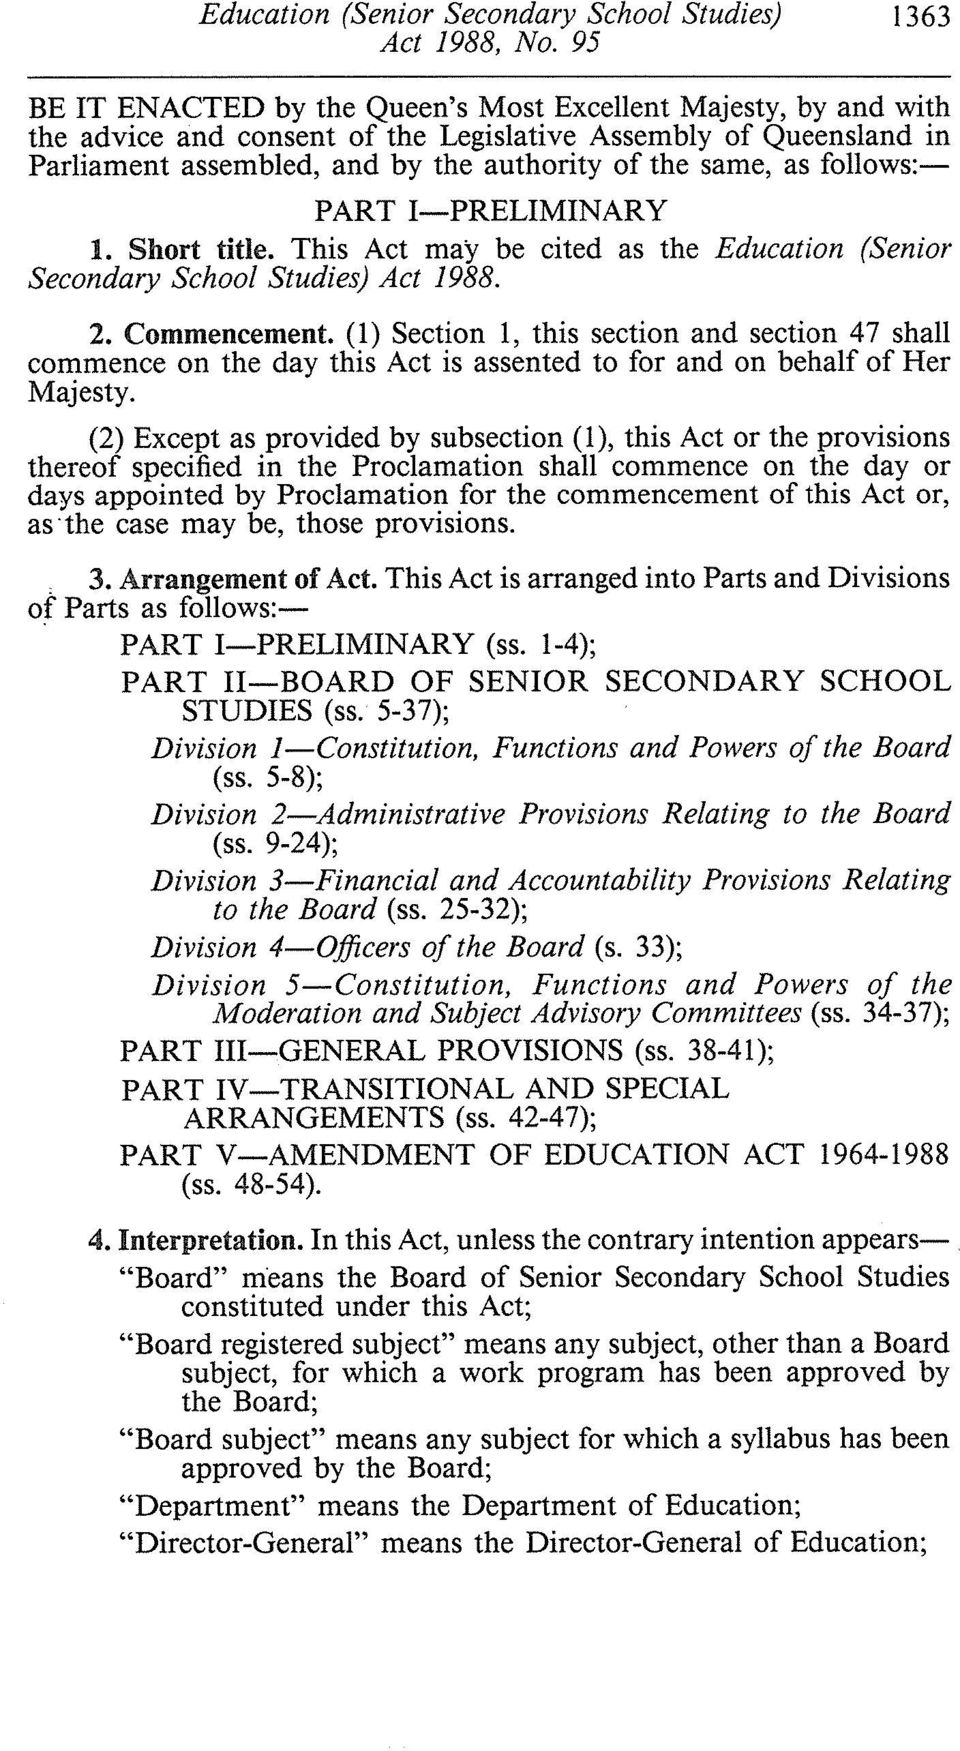 (1) Section 1, this section and section 47 shall commence on the day this Act is assented to for and on behalf of Her Majesty.